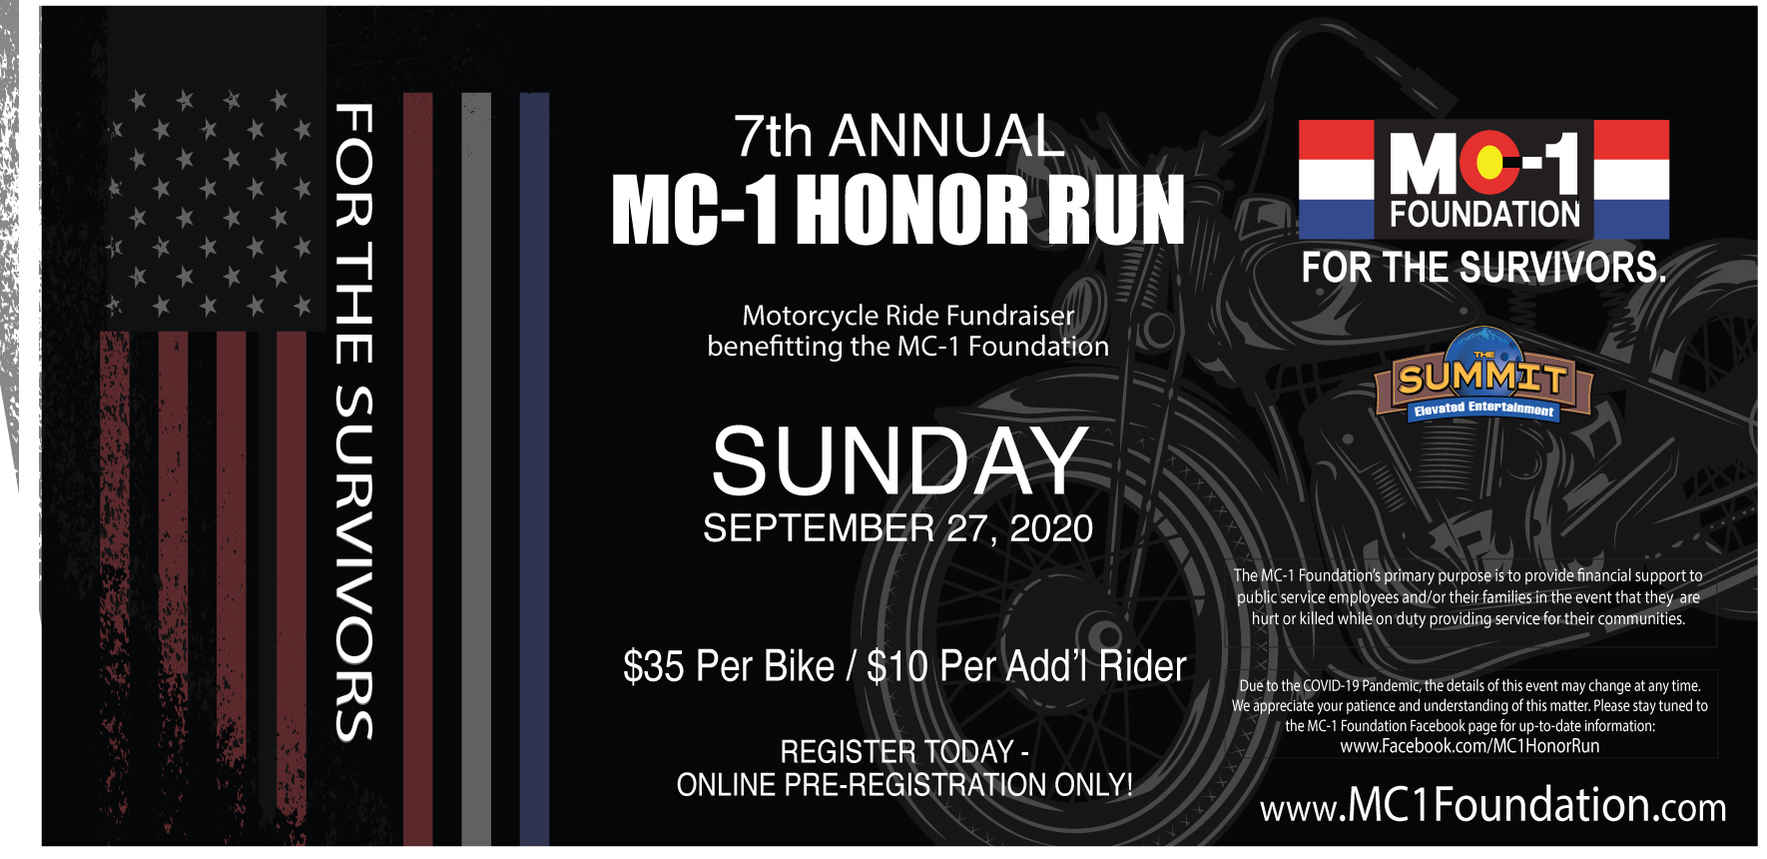 7th Annual MC-1 FOUNDATION HONOR RUN Motorcycle Ride Fundraiser image